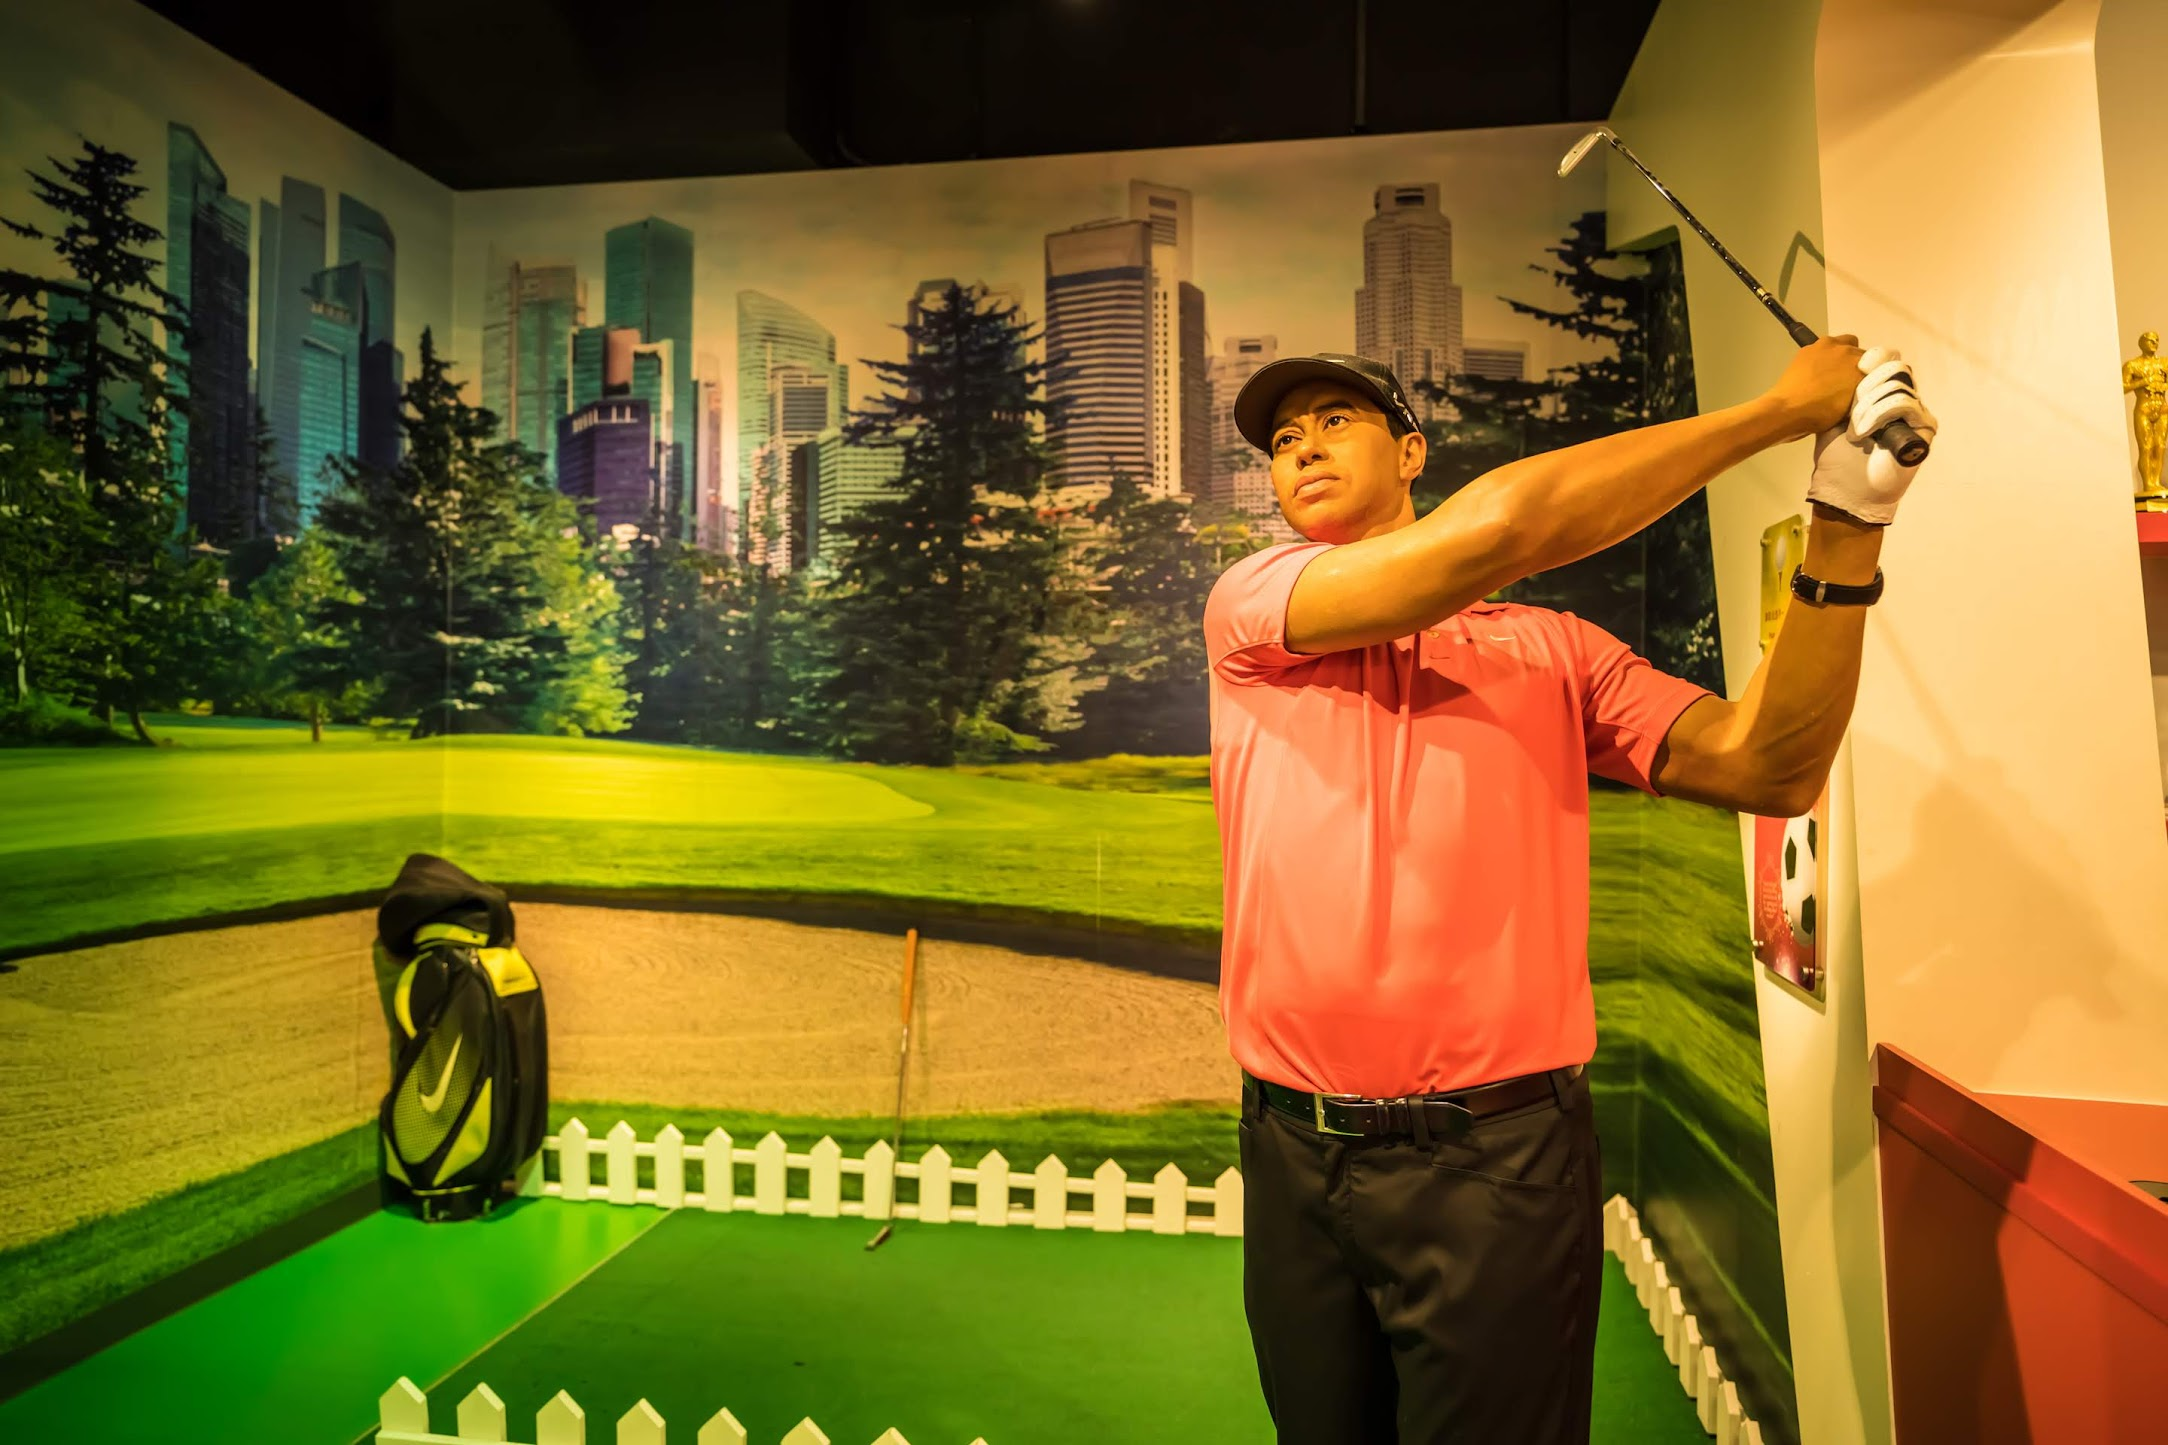 Singapore Sentosa Island Madame Tussauds Singapore Tiger Woods